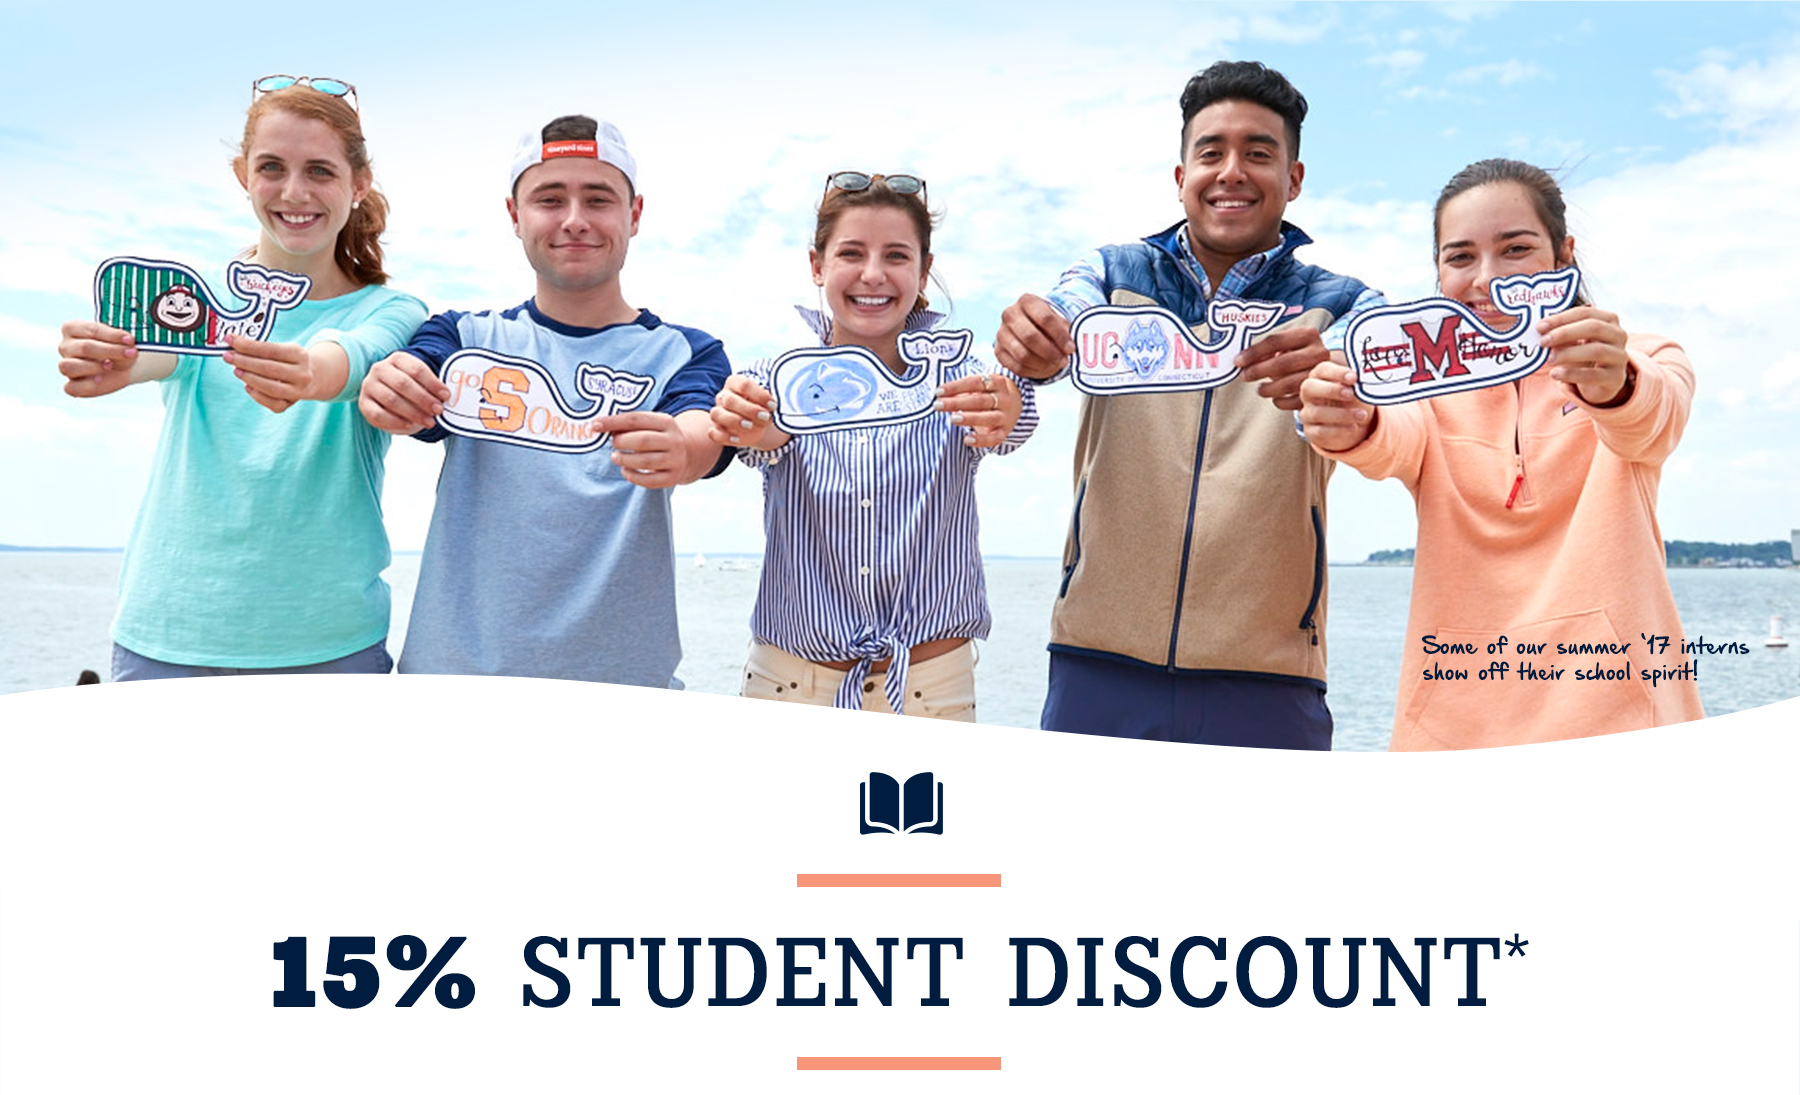 15% Student Discount.